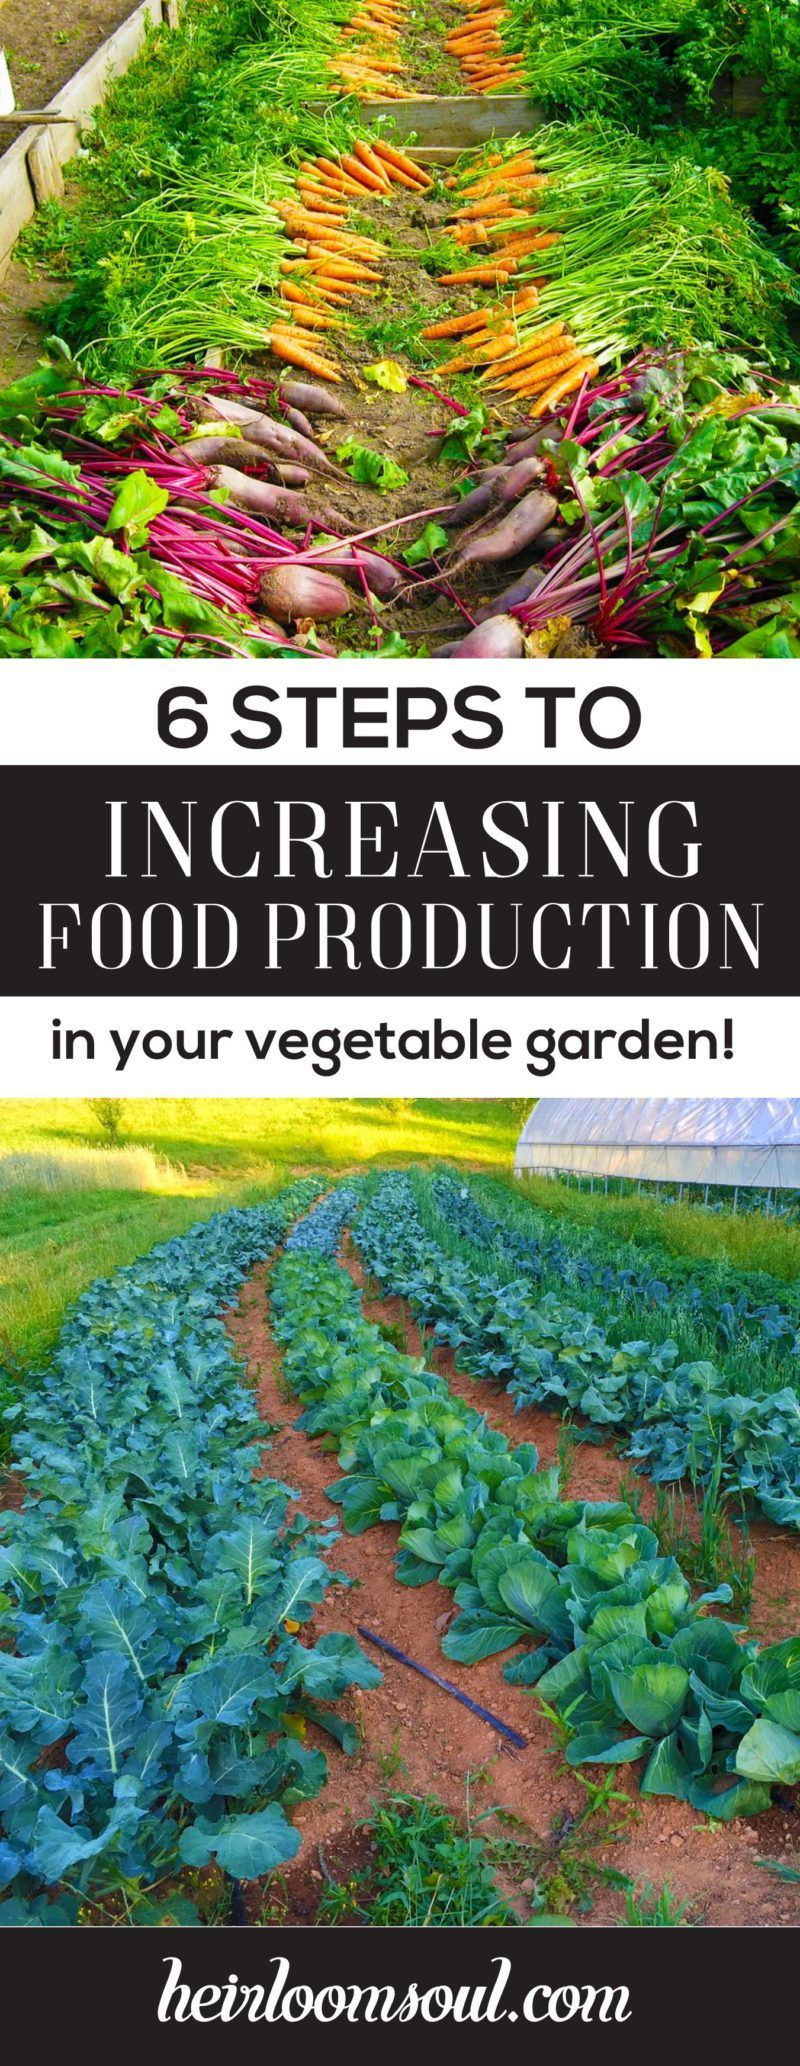 Ways to make your vegetable garden beautiful - 6 Ways To Increase Food Production And Make Your Organic Garden Irresistibly Beautiful